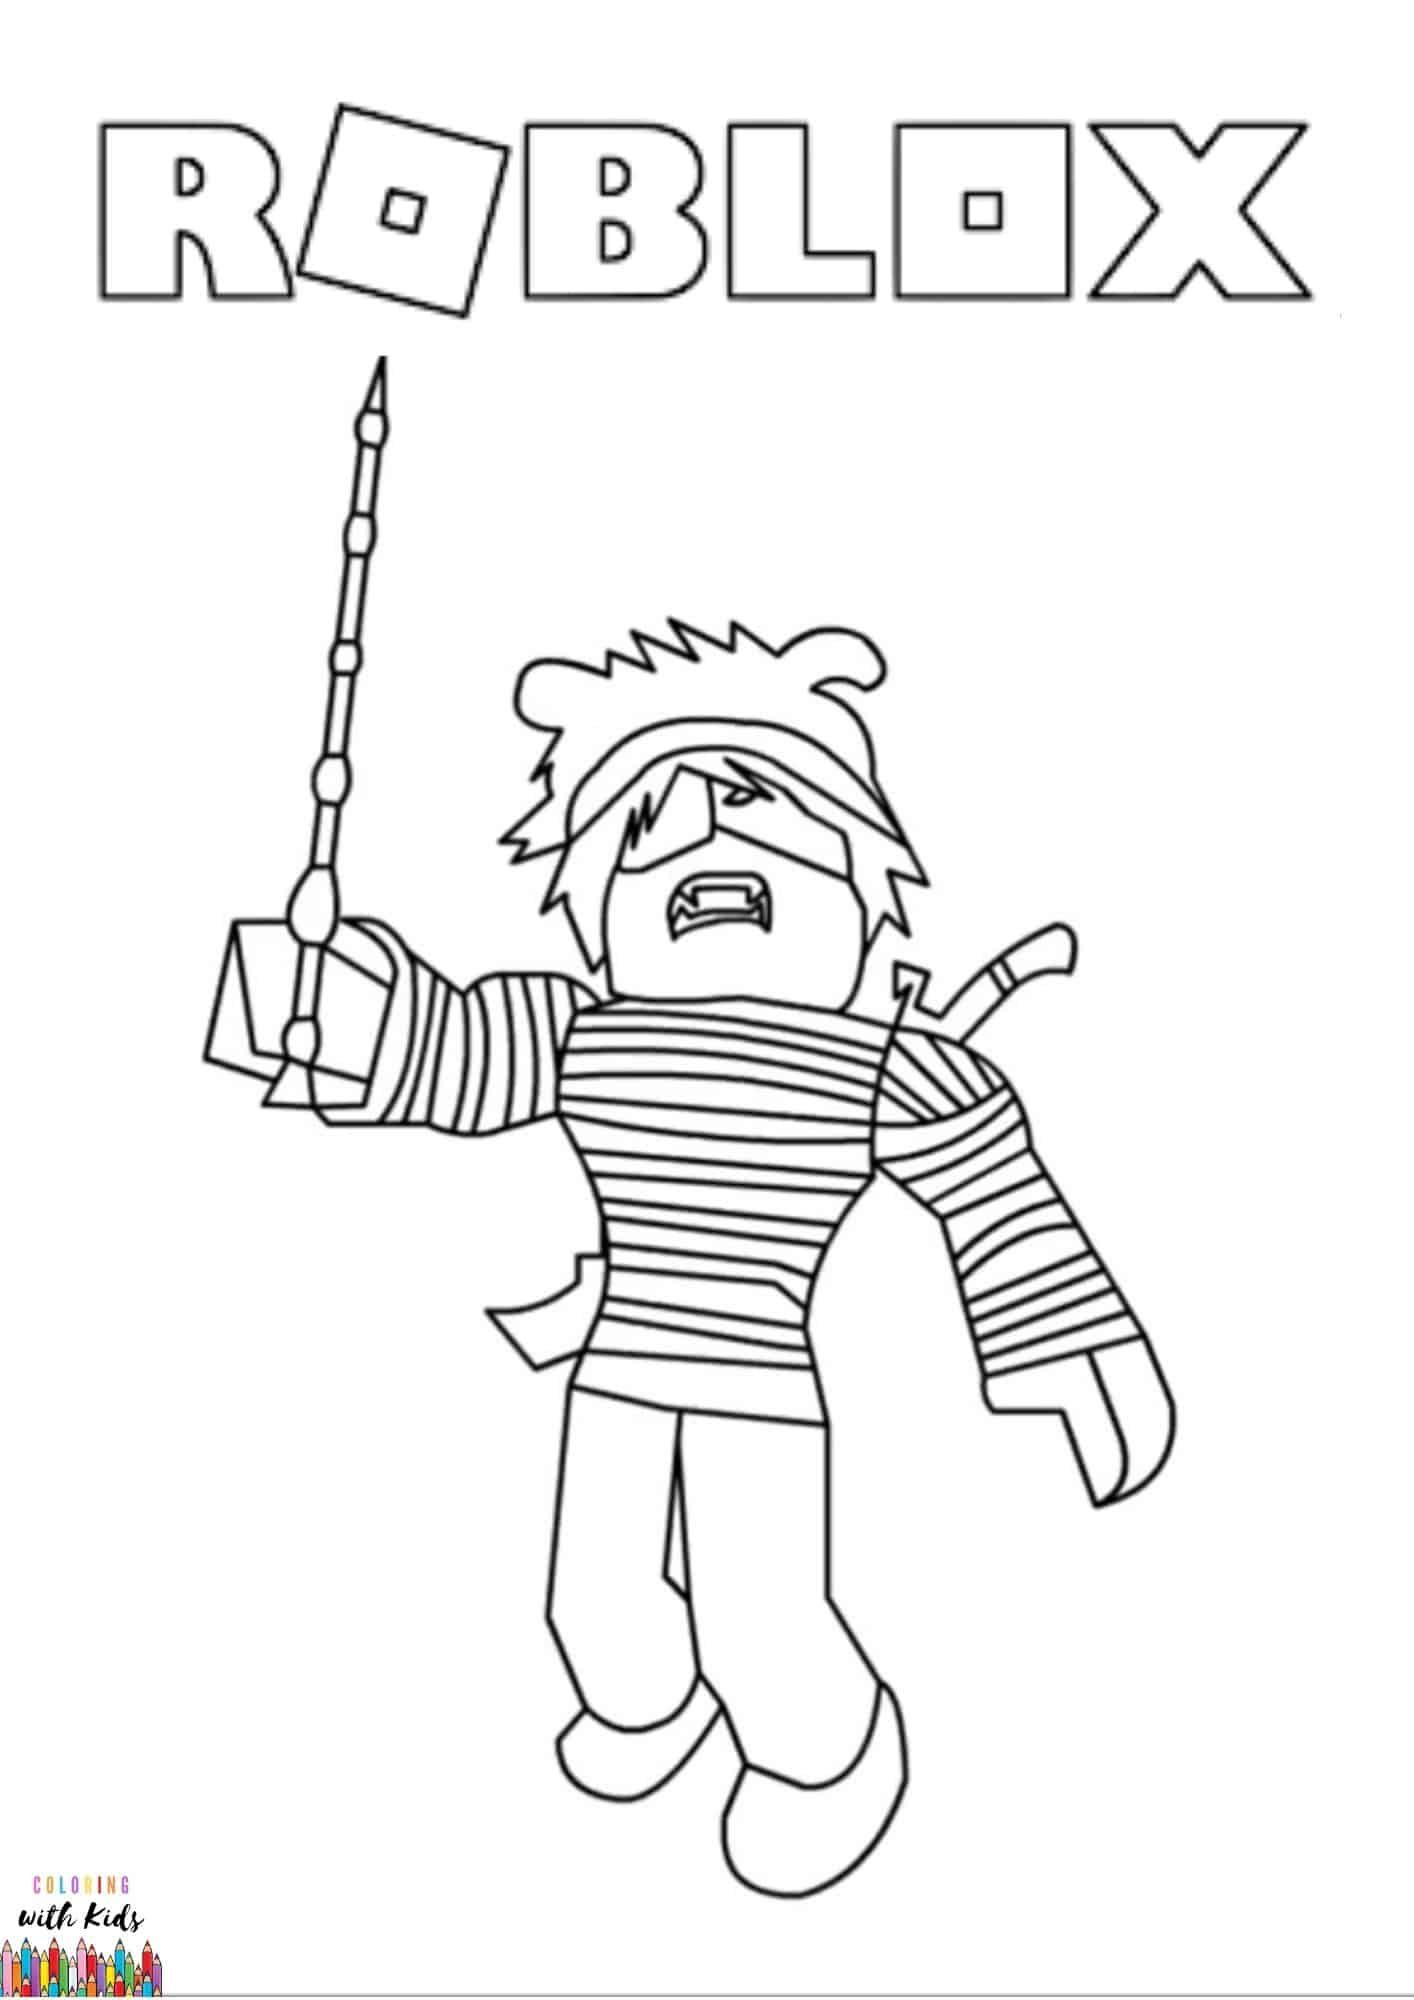 Roblox Coloring Page Image Credit Roblox Avatar Drawing By Yadia Chenia Permission For Personal And In 2020 Coloring Pages Coloring Books Kids Coloring Books